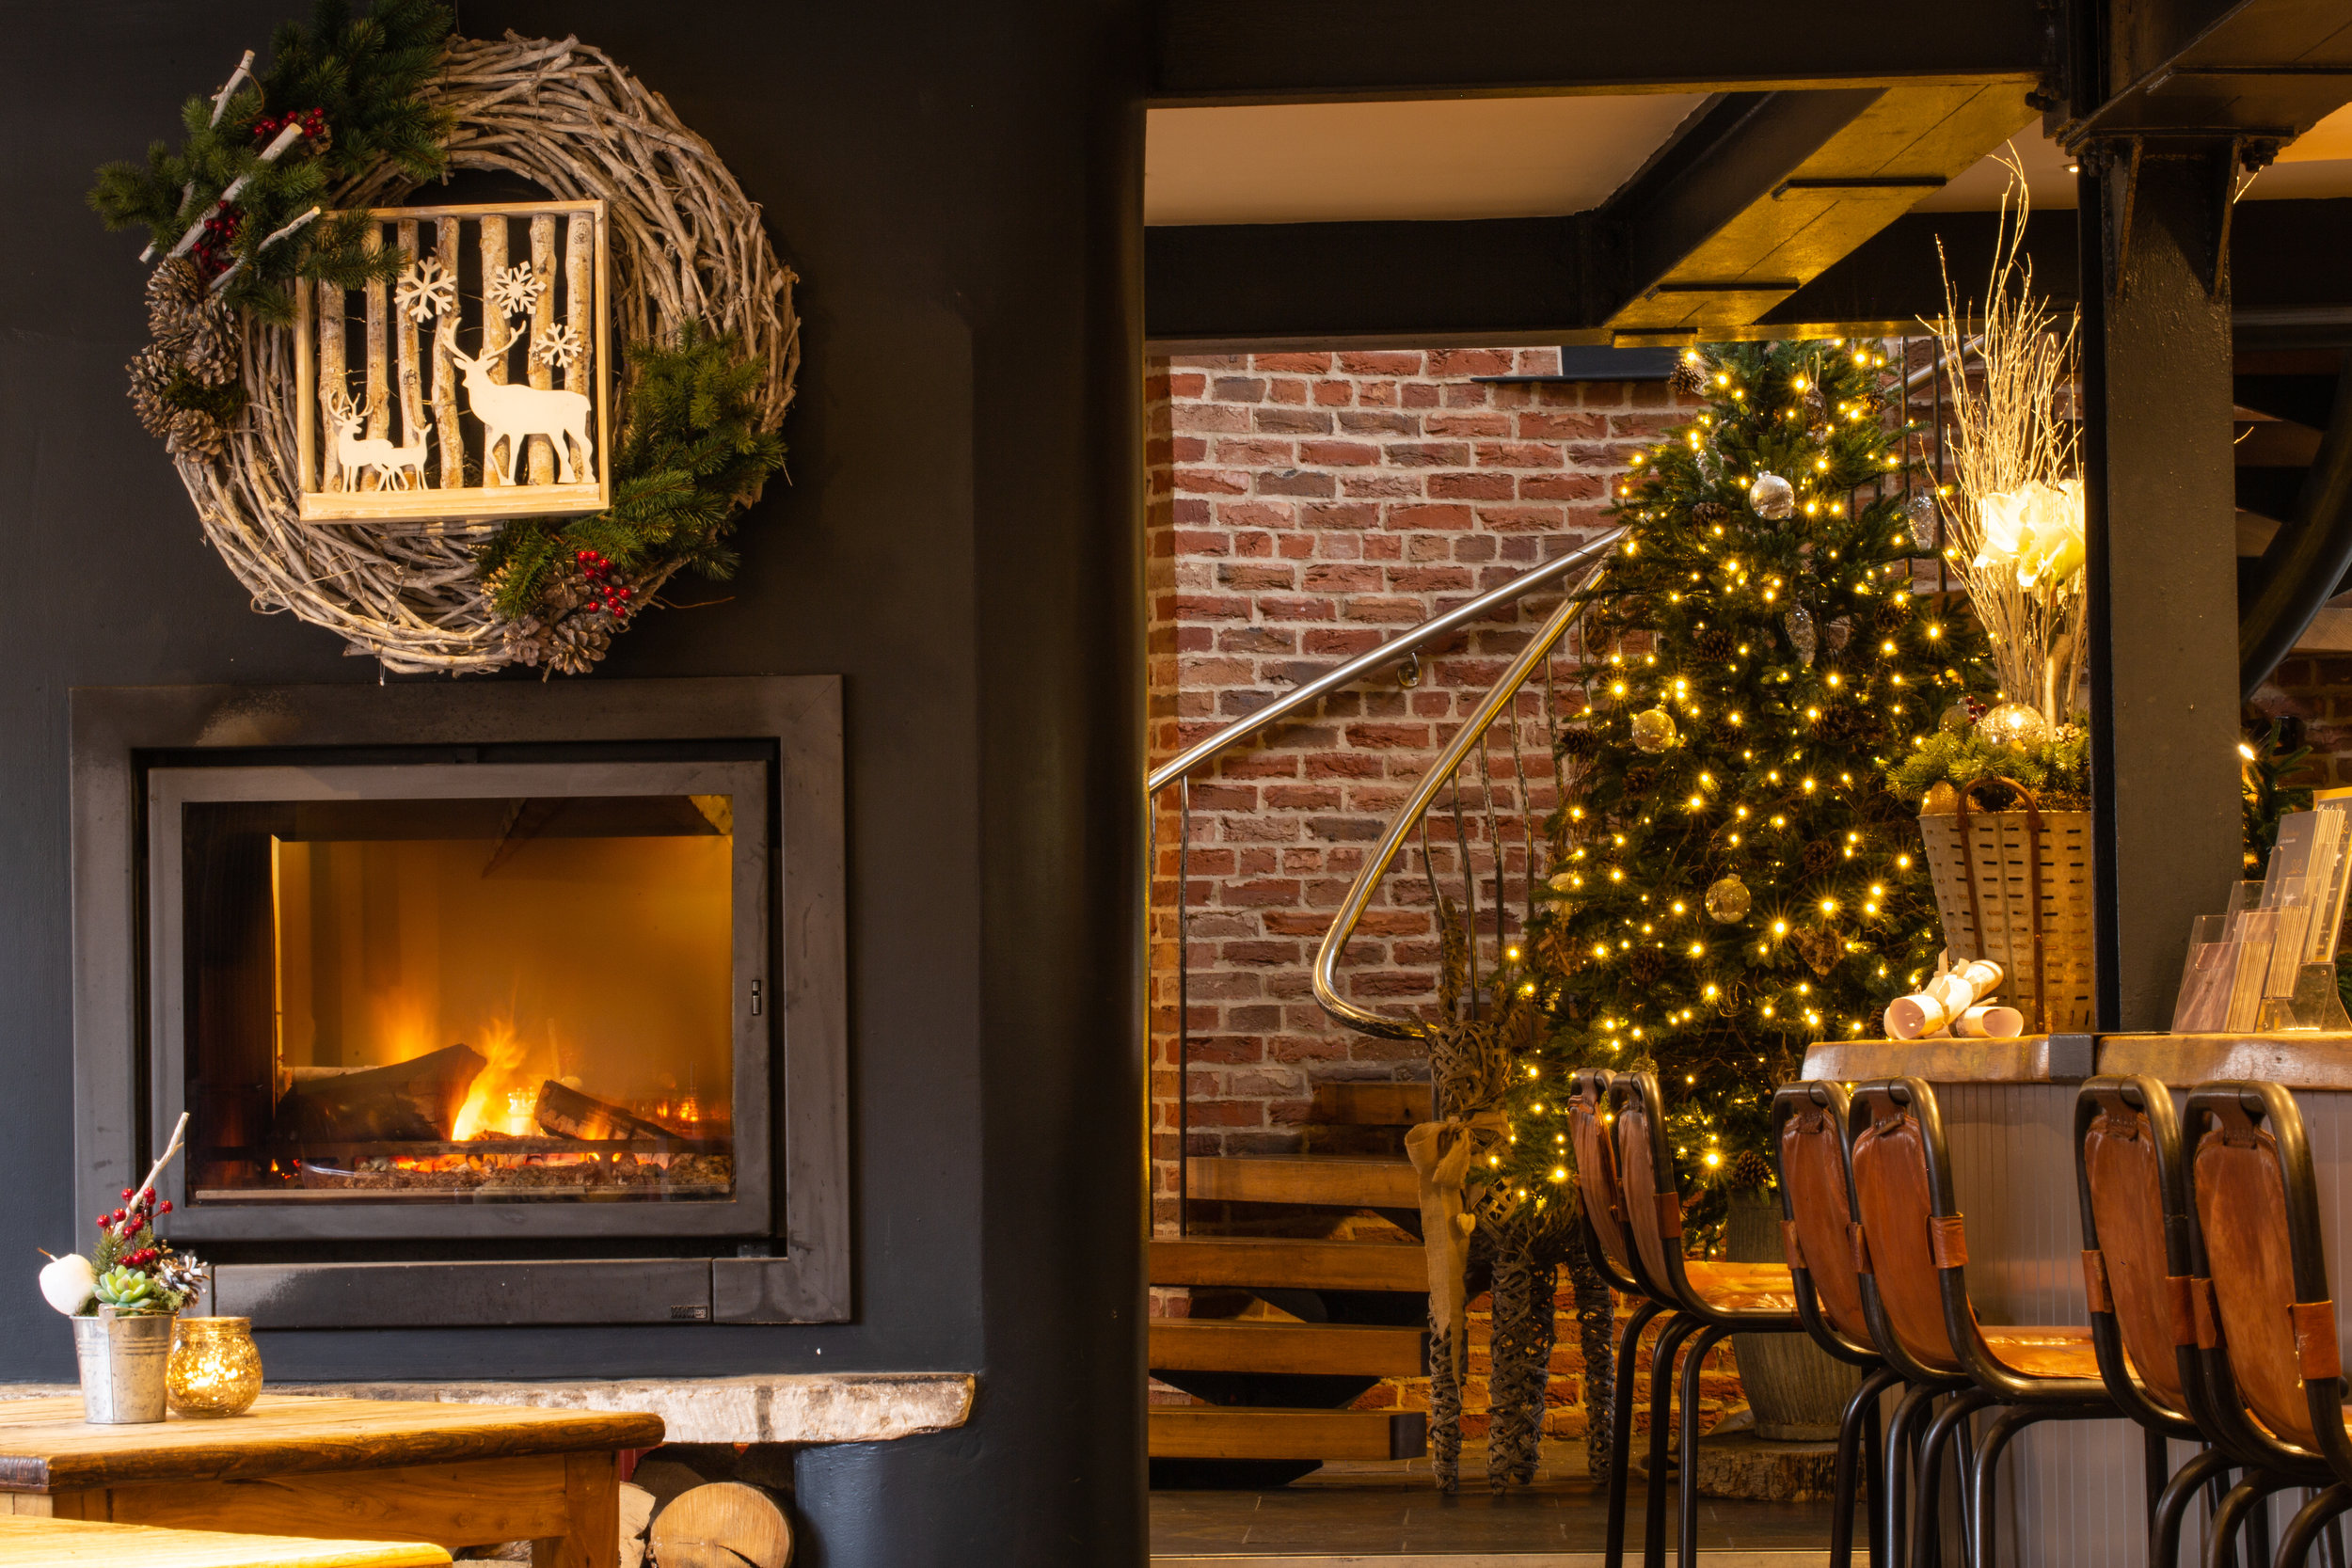 join us from tuesday 3rd december - To celebrate the festive season …